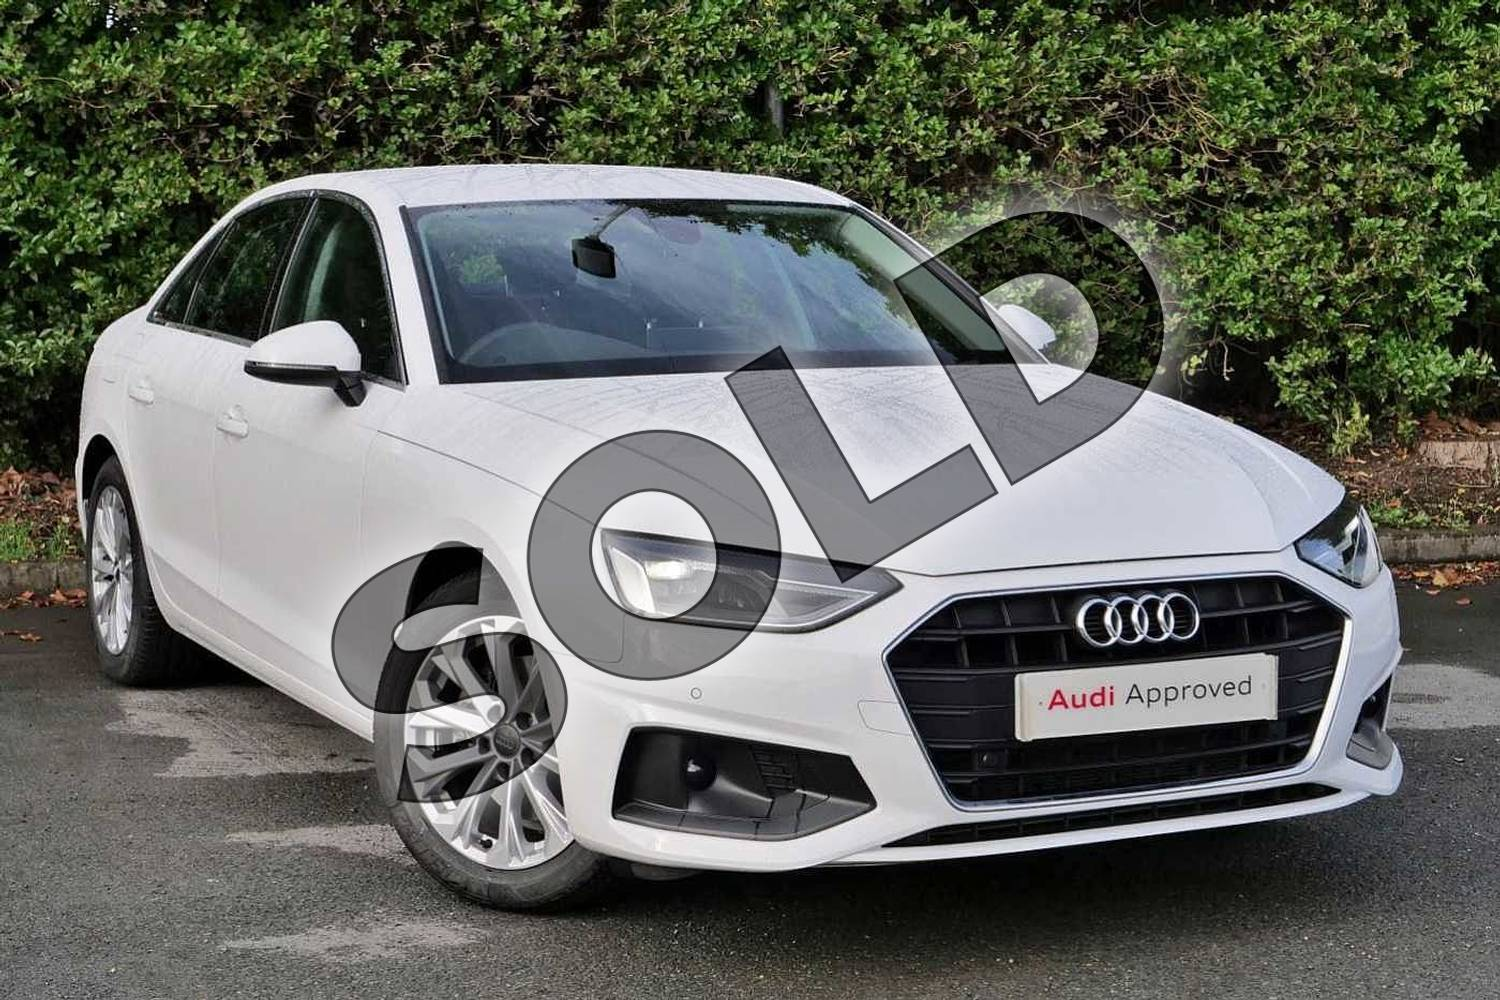 2020 Audi A4 Diesel Saloon 35 TDI Technik 4dr S Tronic in Ibis White at Worcester Audi